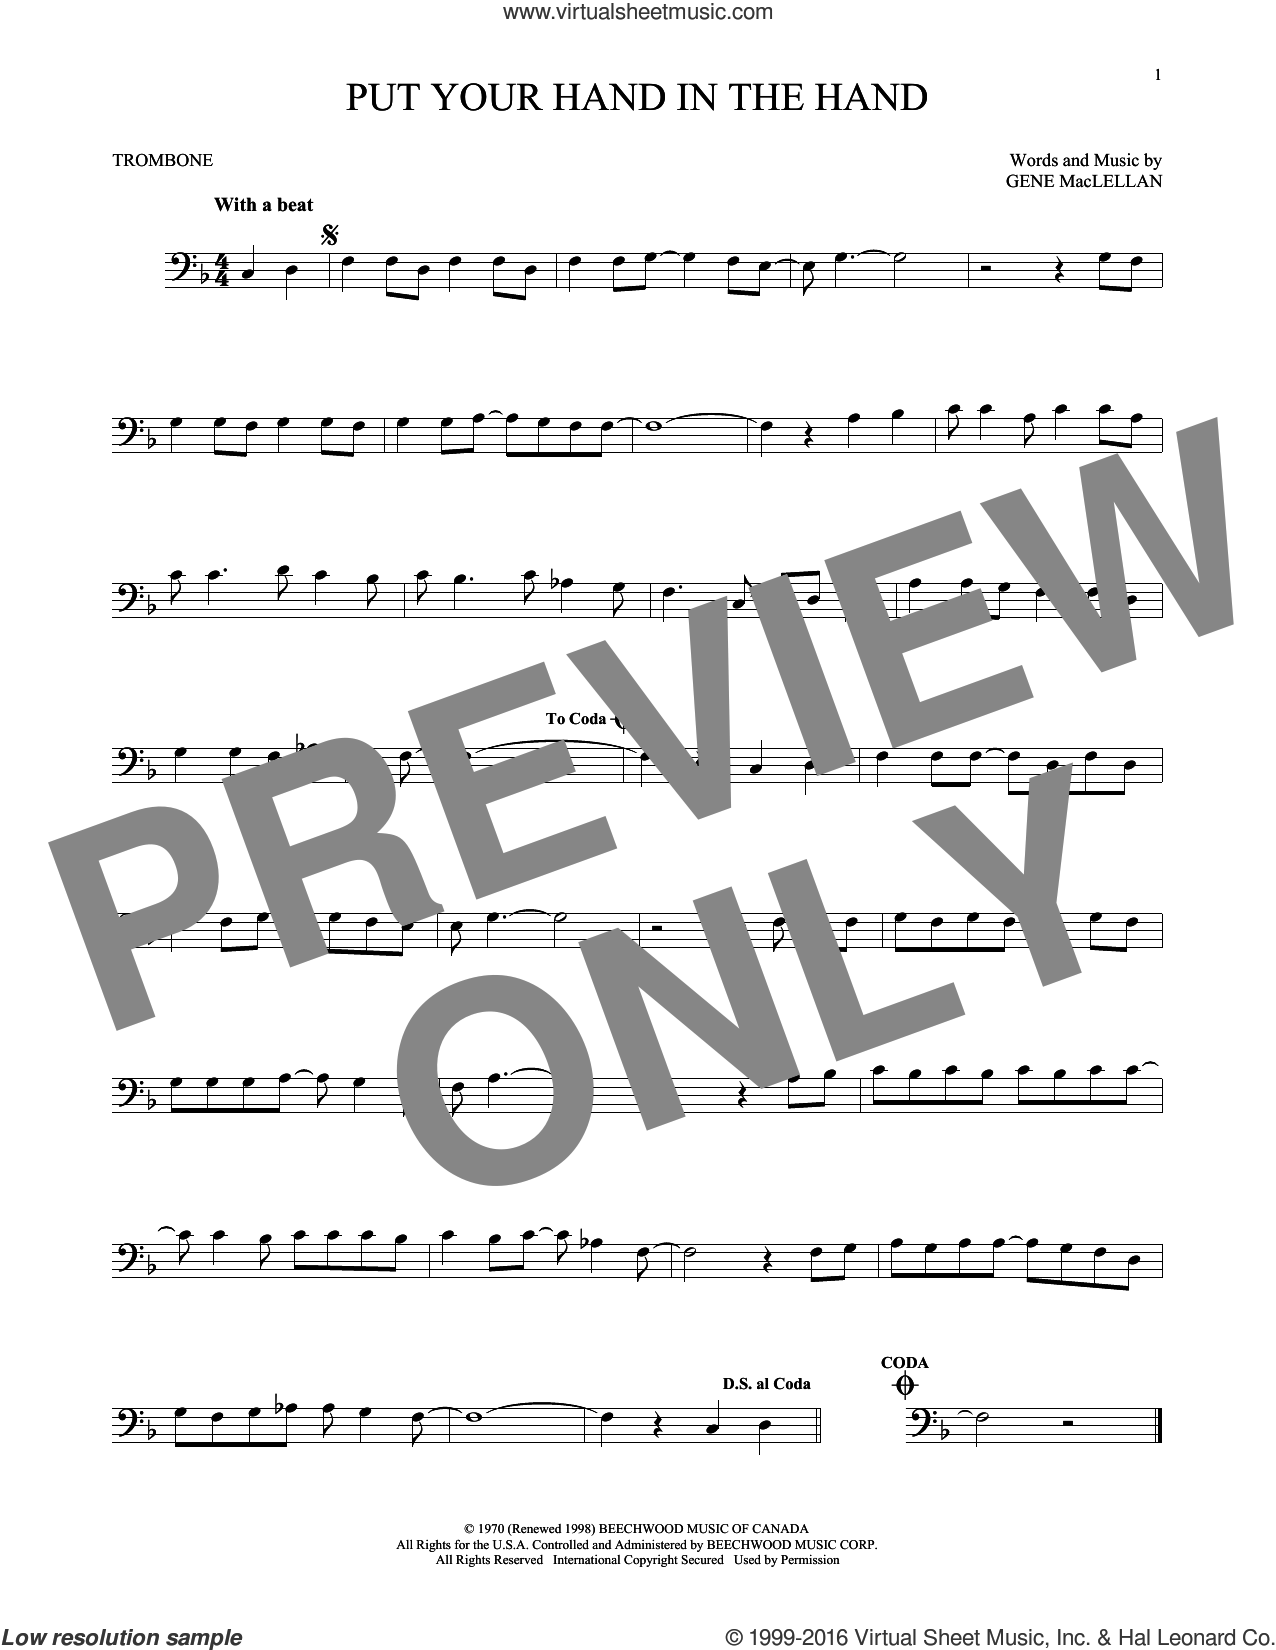 Put Your Hand In The Hand sheet music for trombone solo by MacLellan and Ocean and Gene MacLellan, intermediate skill level